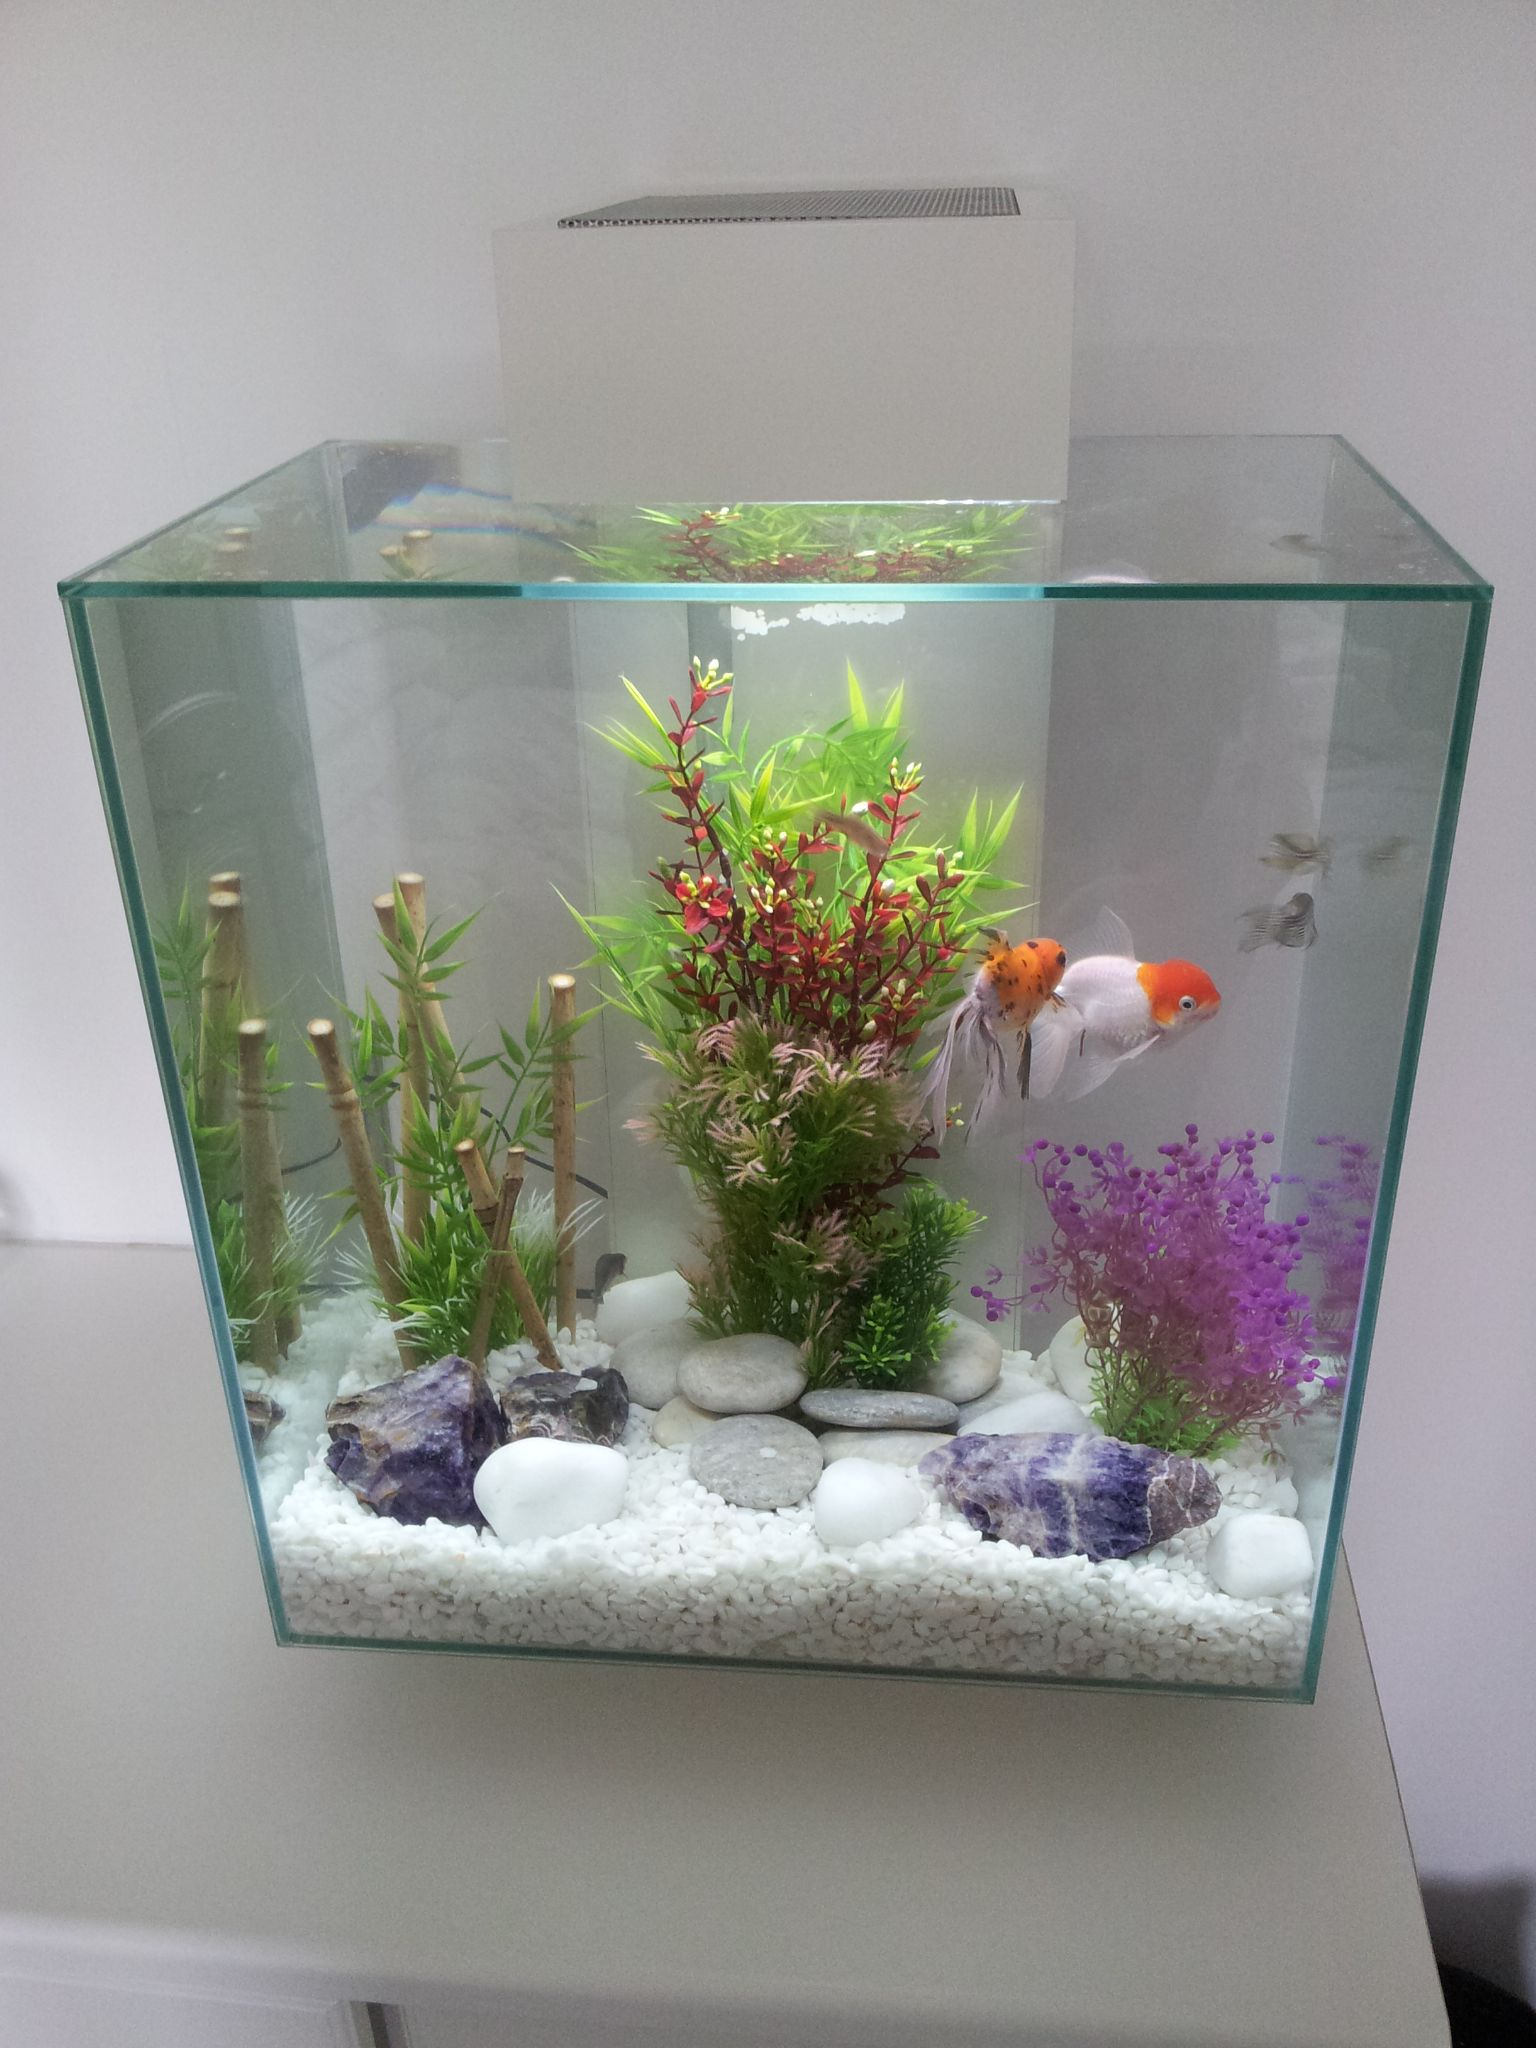 I decided my fish could do with a more modern des res so for Modern fish tanks